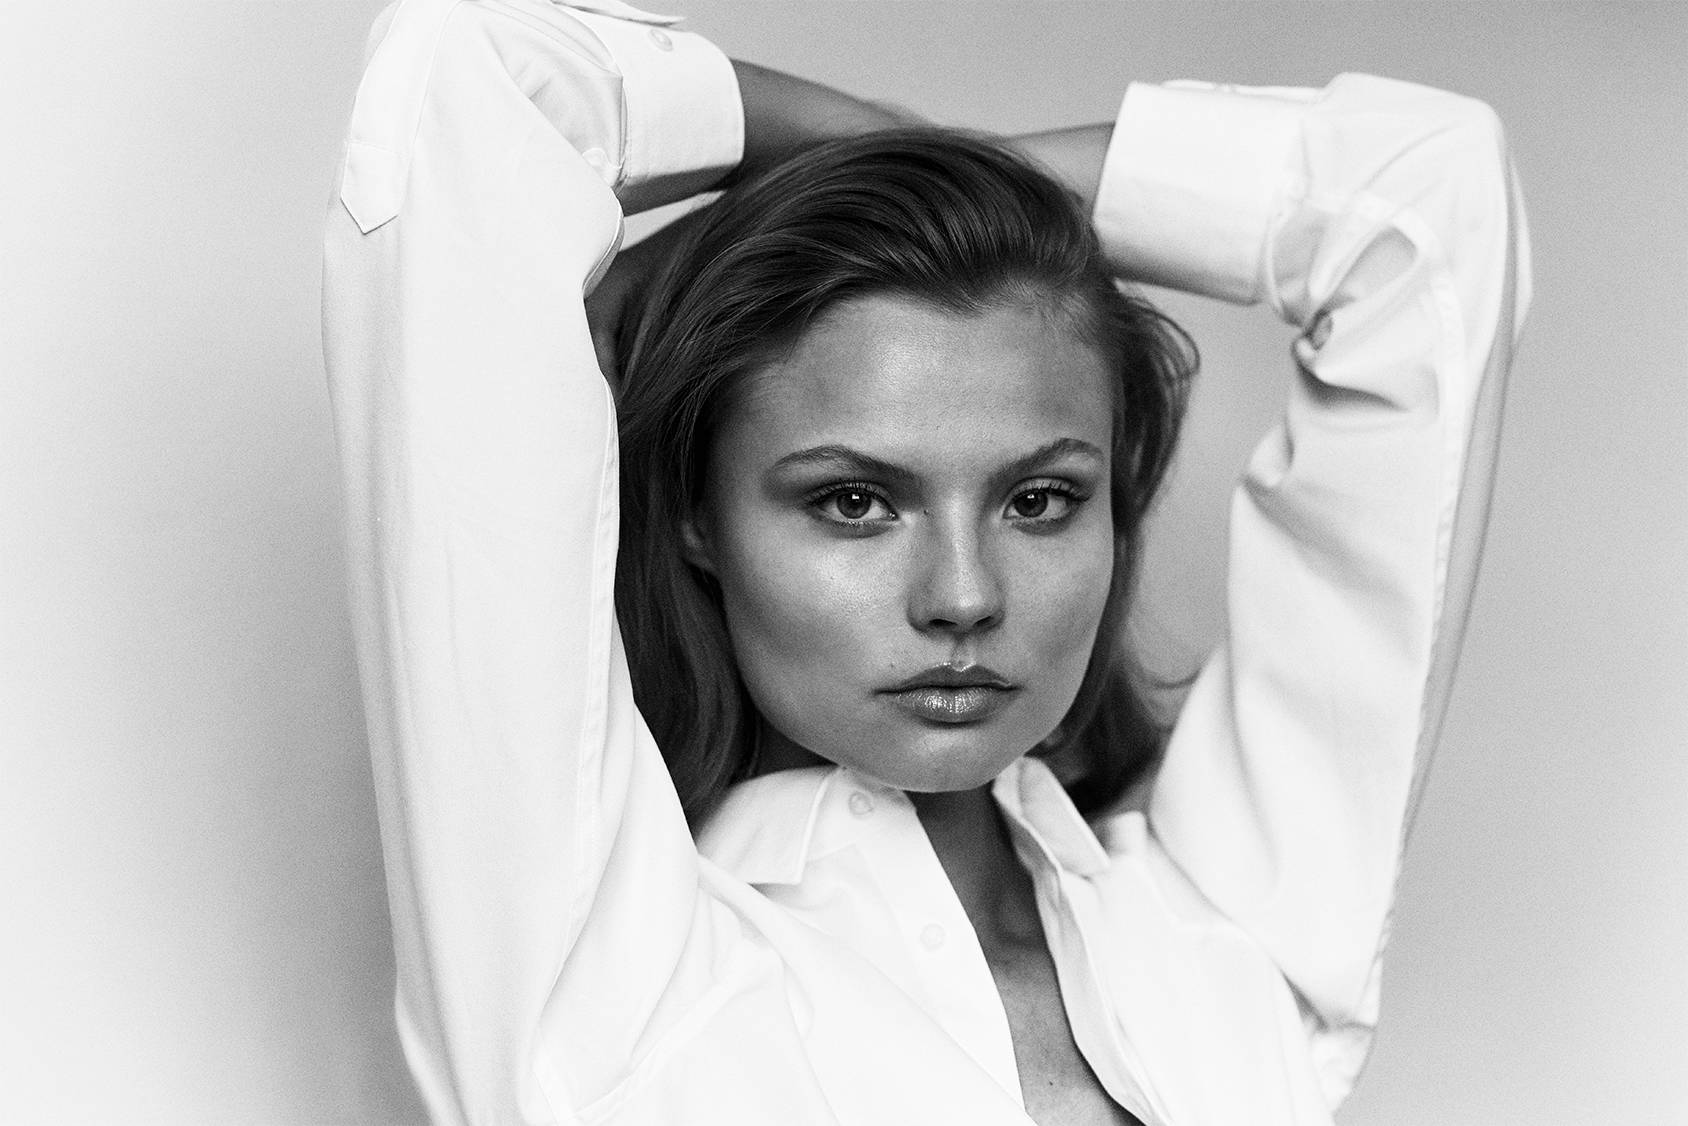 TOP MODEL SECRETS: MAGDALENA FRACKOWIAK